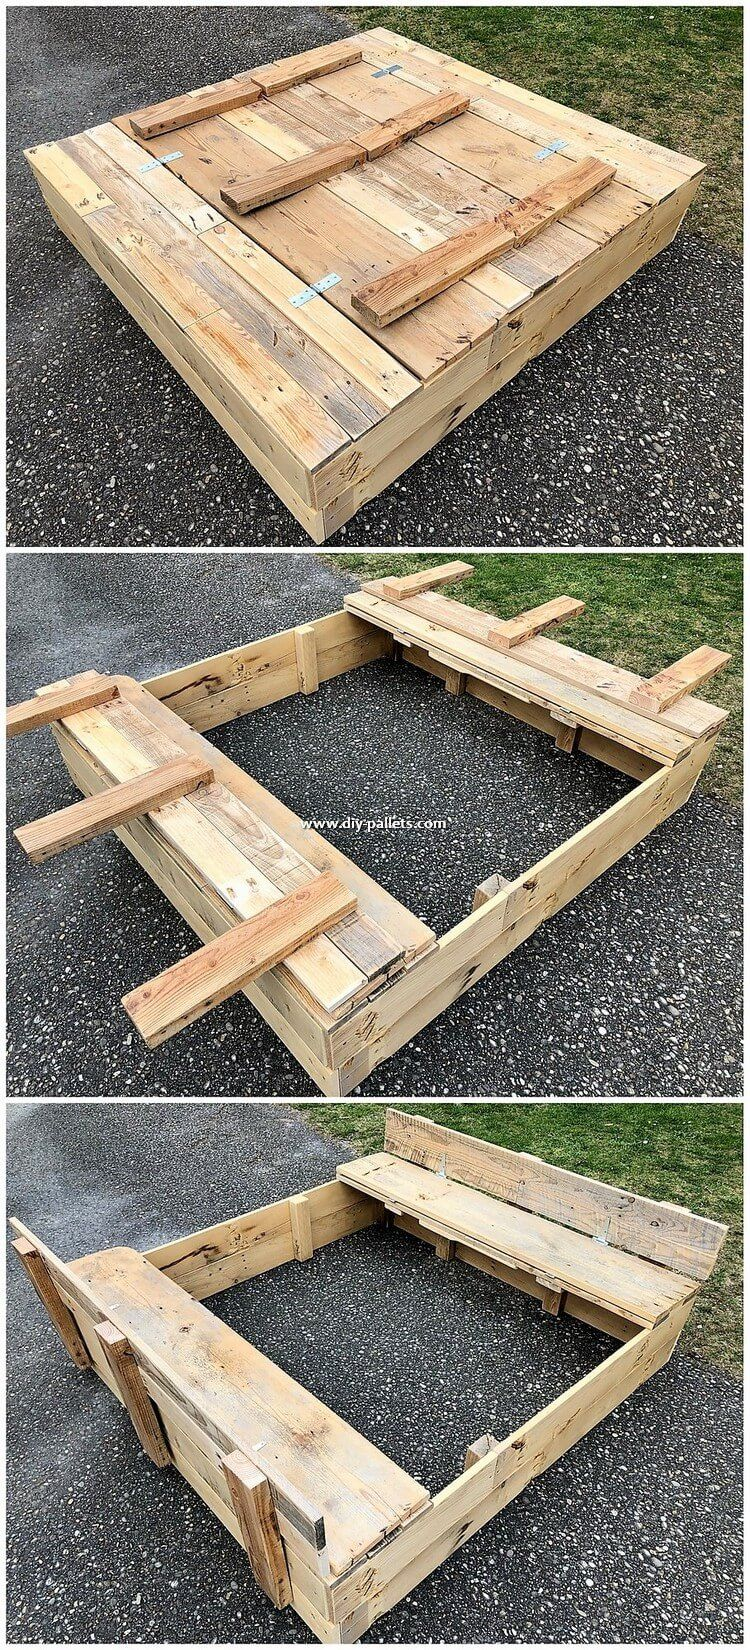 Top 25 New and Awesome DIY Wood Pallet Projects | DIY ...